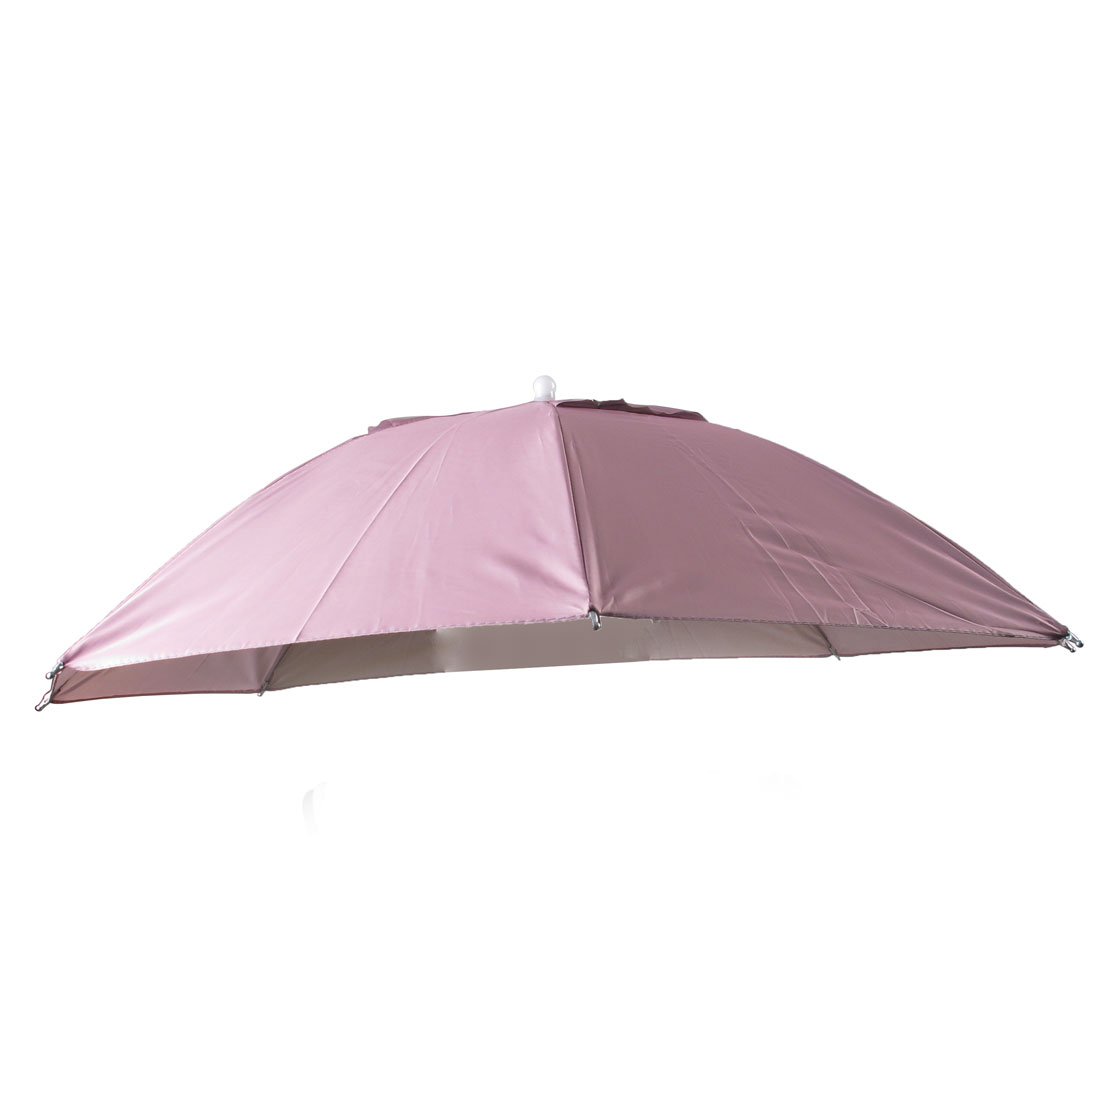 Travel Camping Light Pink Polyester Foldable Sun Umbrella Hat